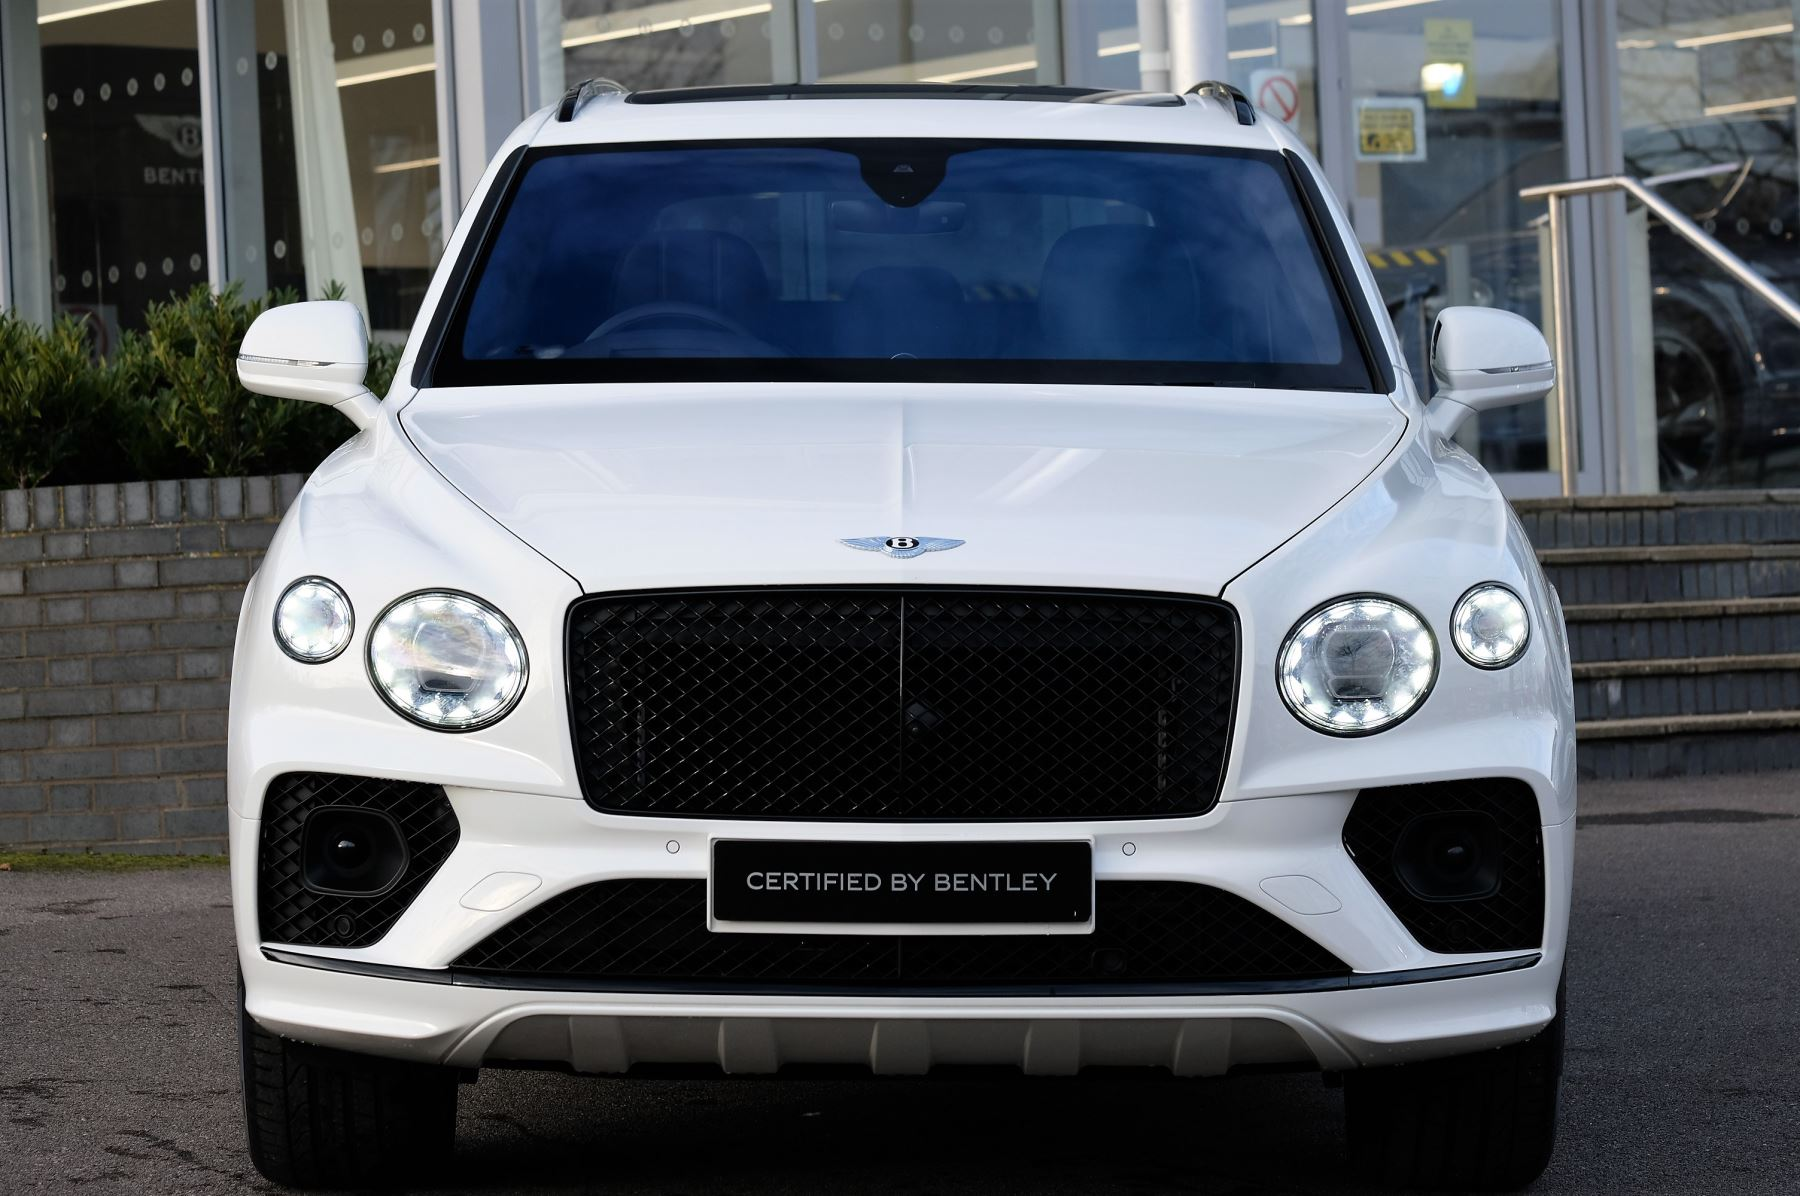 Bentley Bentayga 4.0 V8 - Touring and Front Seat Comfort Specification  image 2